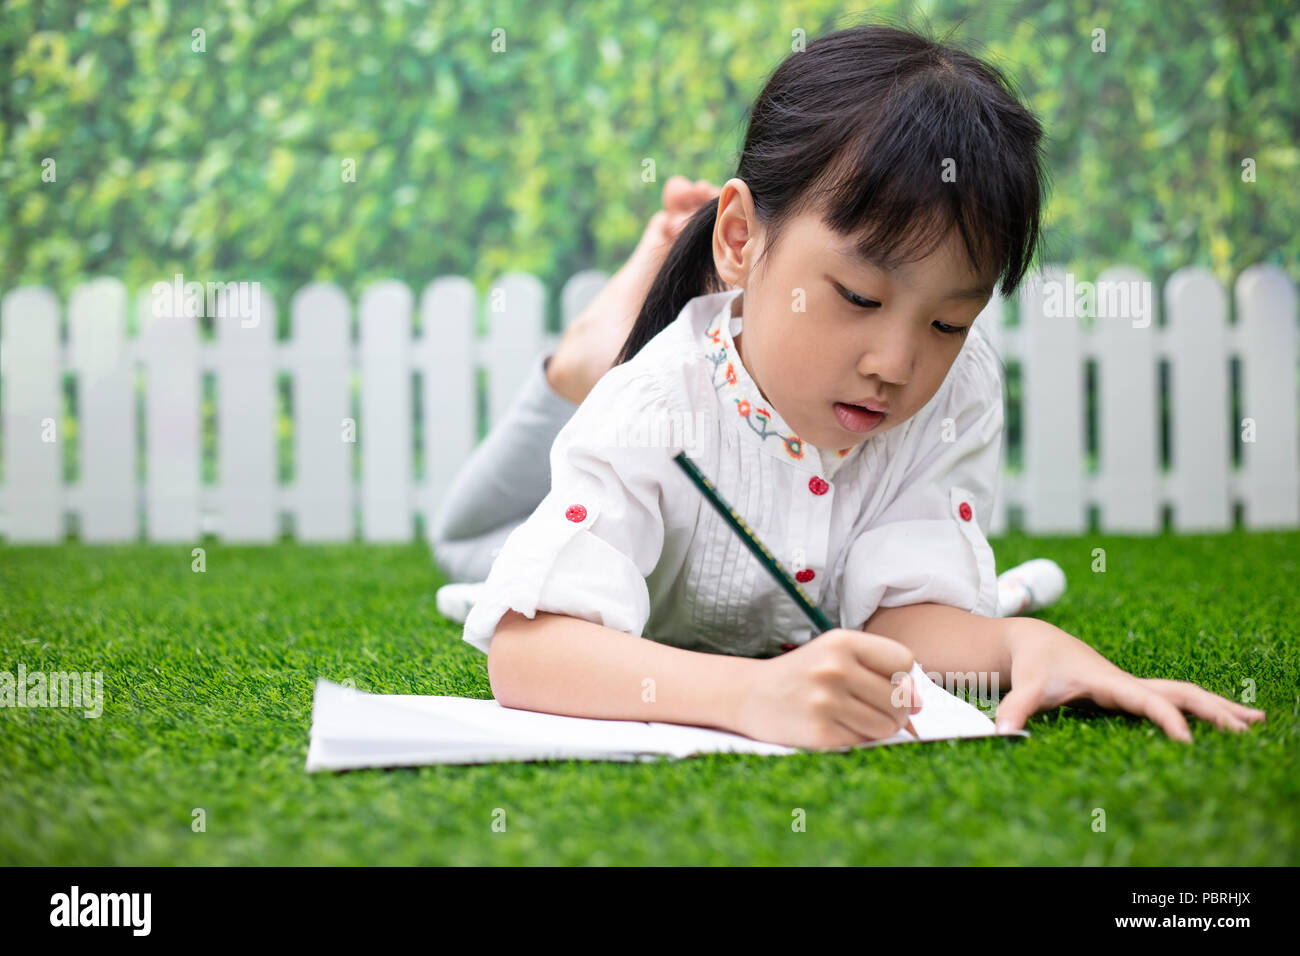 Asian Little Chinese girl kneeling on the grass and doing homework at outdoor park - Stock Image